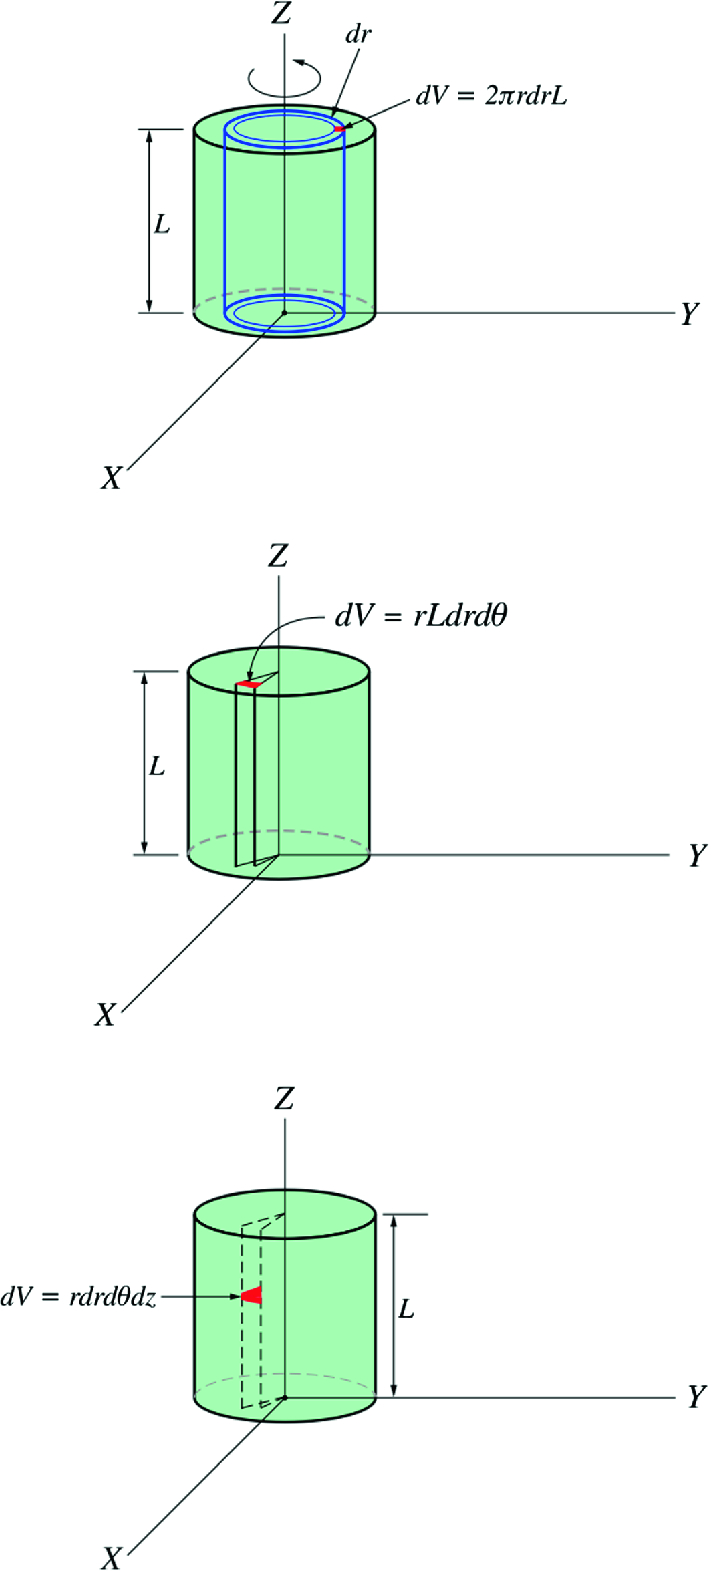 Fig. 7.18